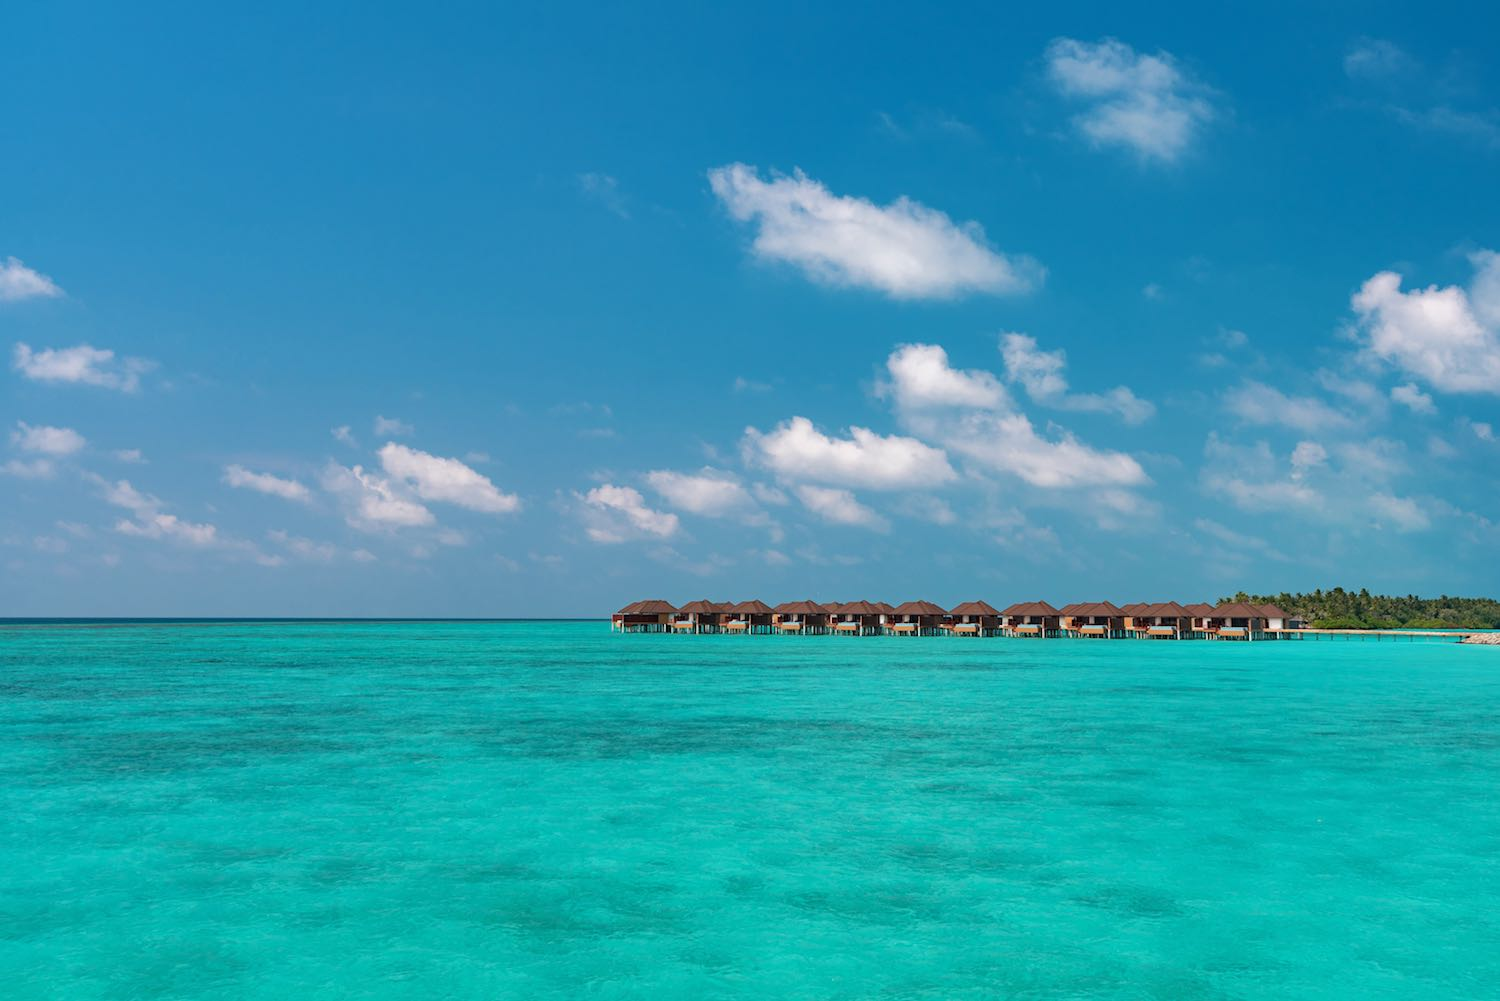 maldives-varu-by-atmosphere-view-of-water-villa-jetty-holiday-honeymoon-vacation-invite-to-paradise.jpg